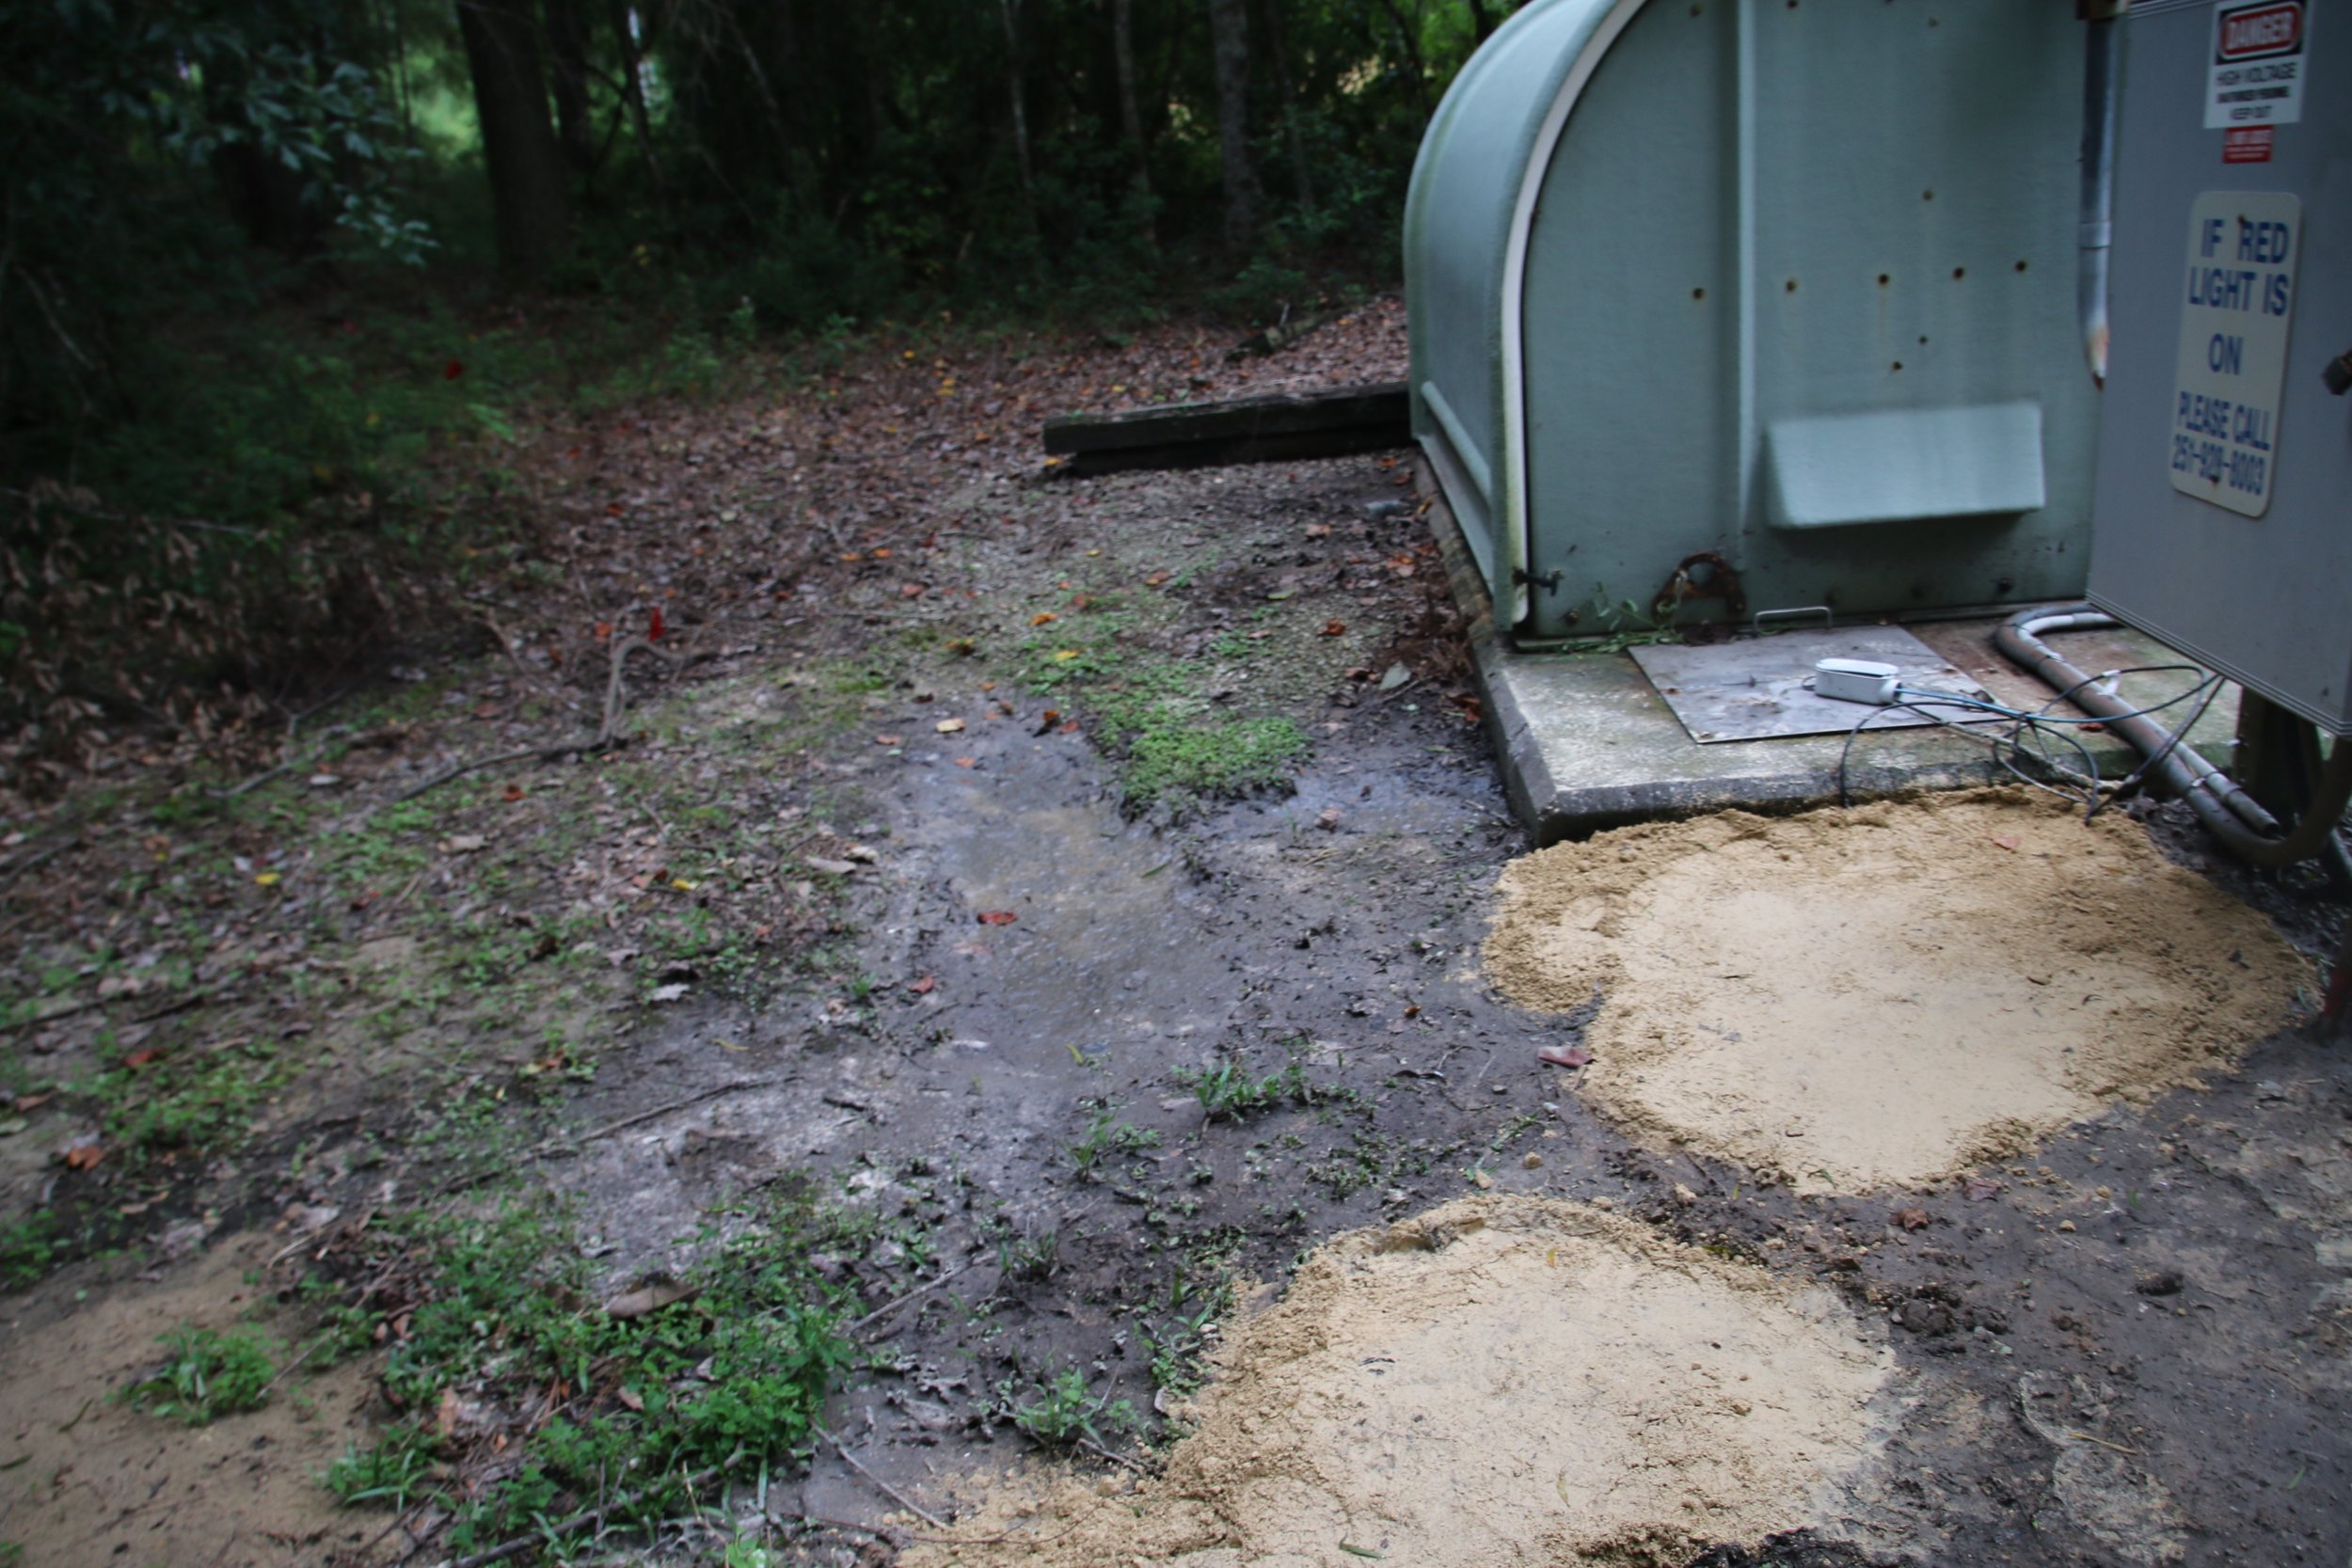 Over 260,000 gallons spilled from this lift station near the Woodlands in Fairhope from Friday (08/04/17) - Monday morning.